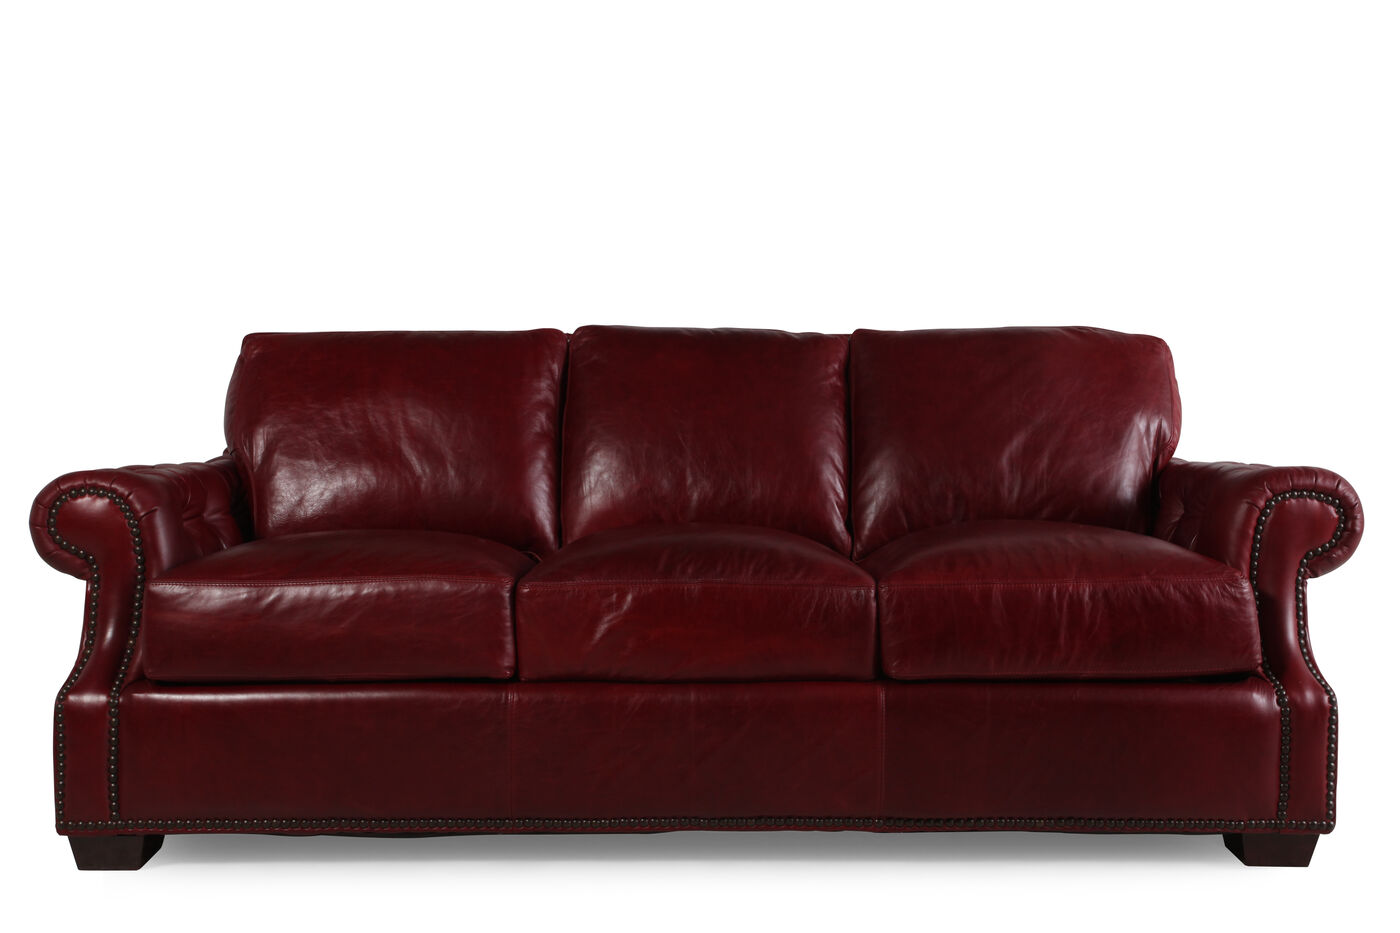 Usa Leather Marsala Red Sofa Mathis Brothers Furniture